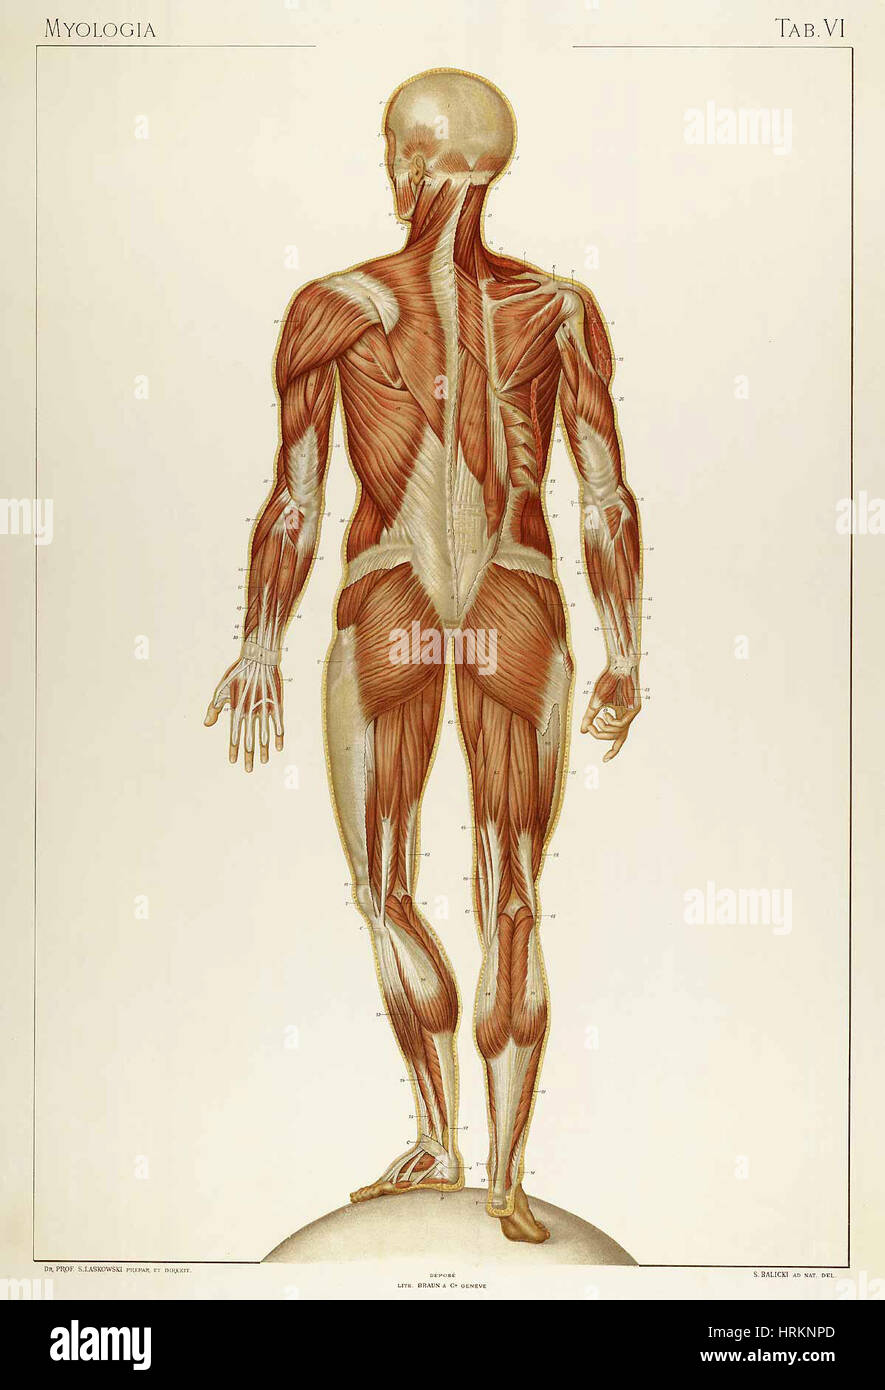 Historical Anatomical Illustration - Stock Image